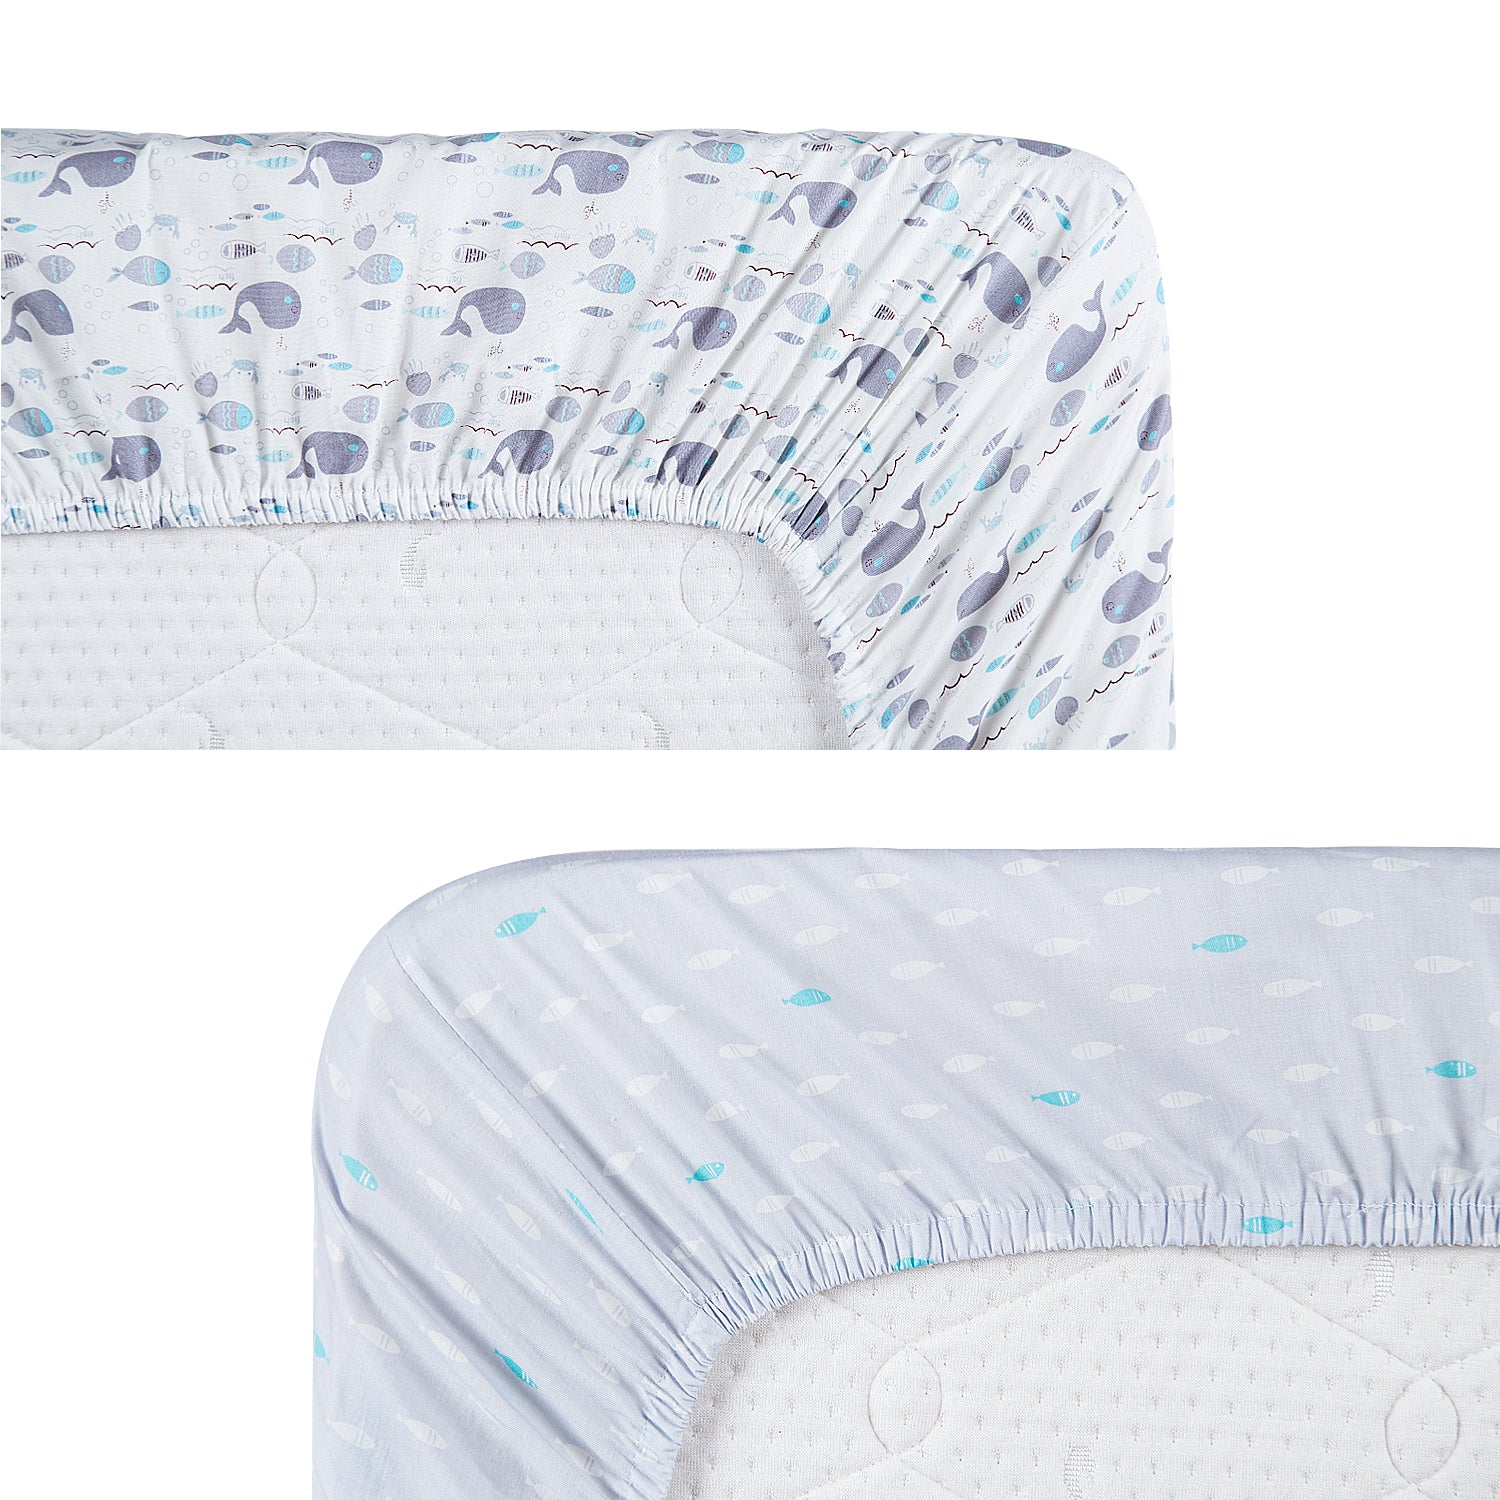 100% Cotton Crib Sheets 2PK - Sea Word (Gray) & Fish (Blue)